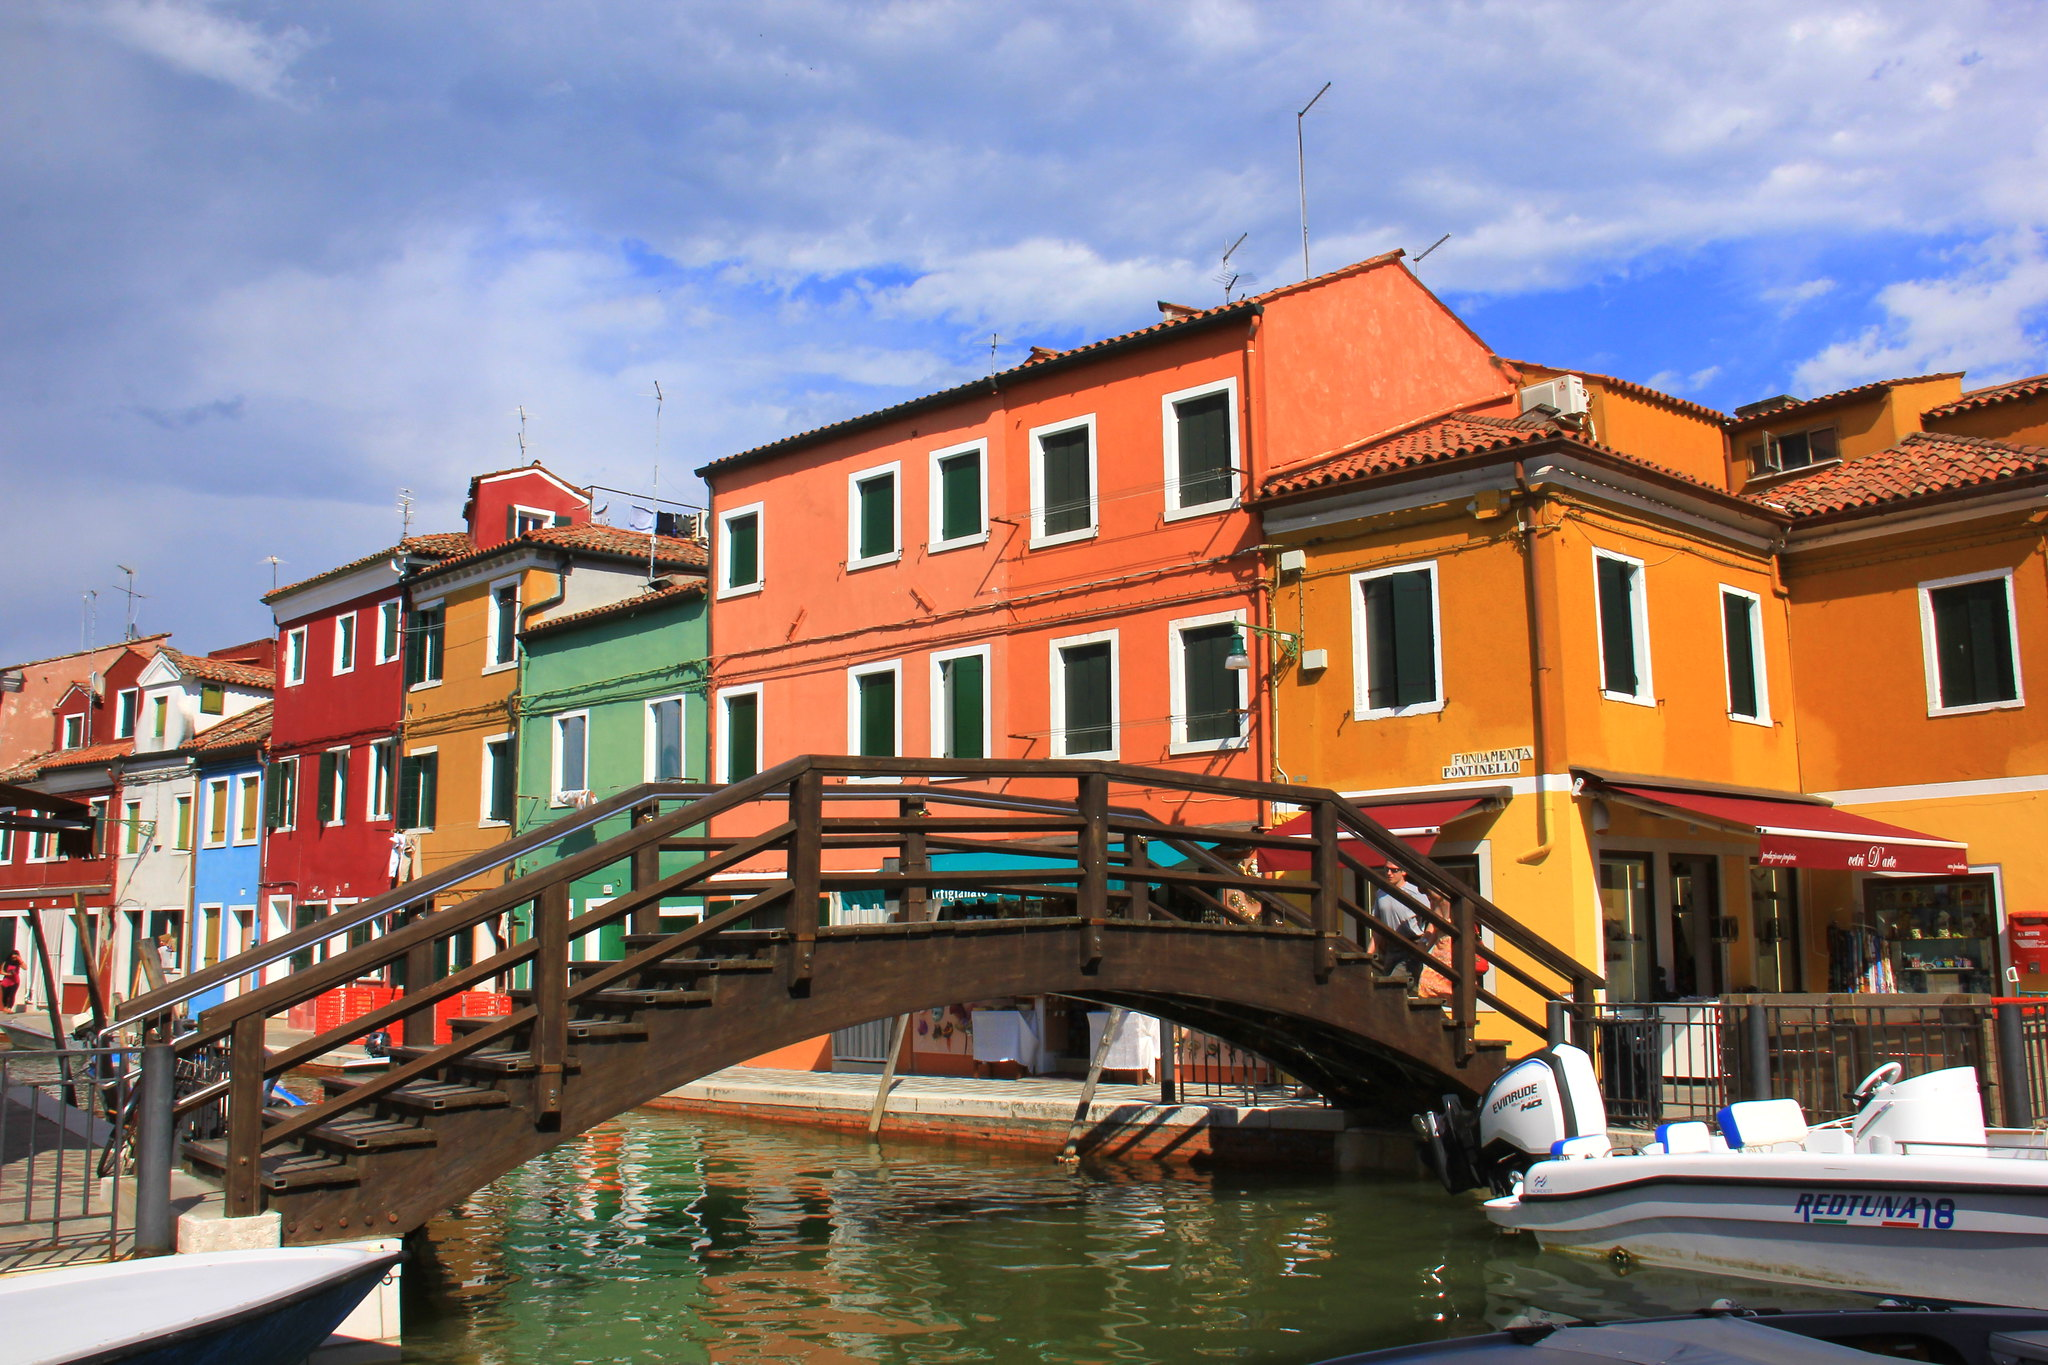 The famous tourist spot of Burano island.